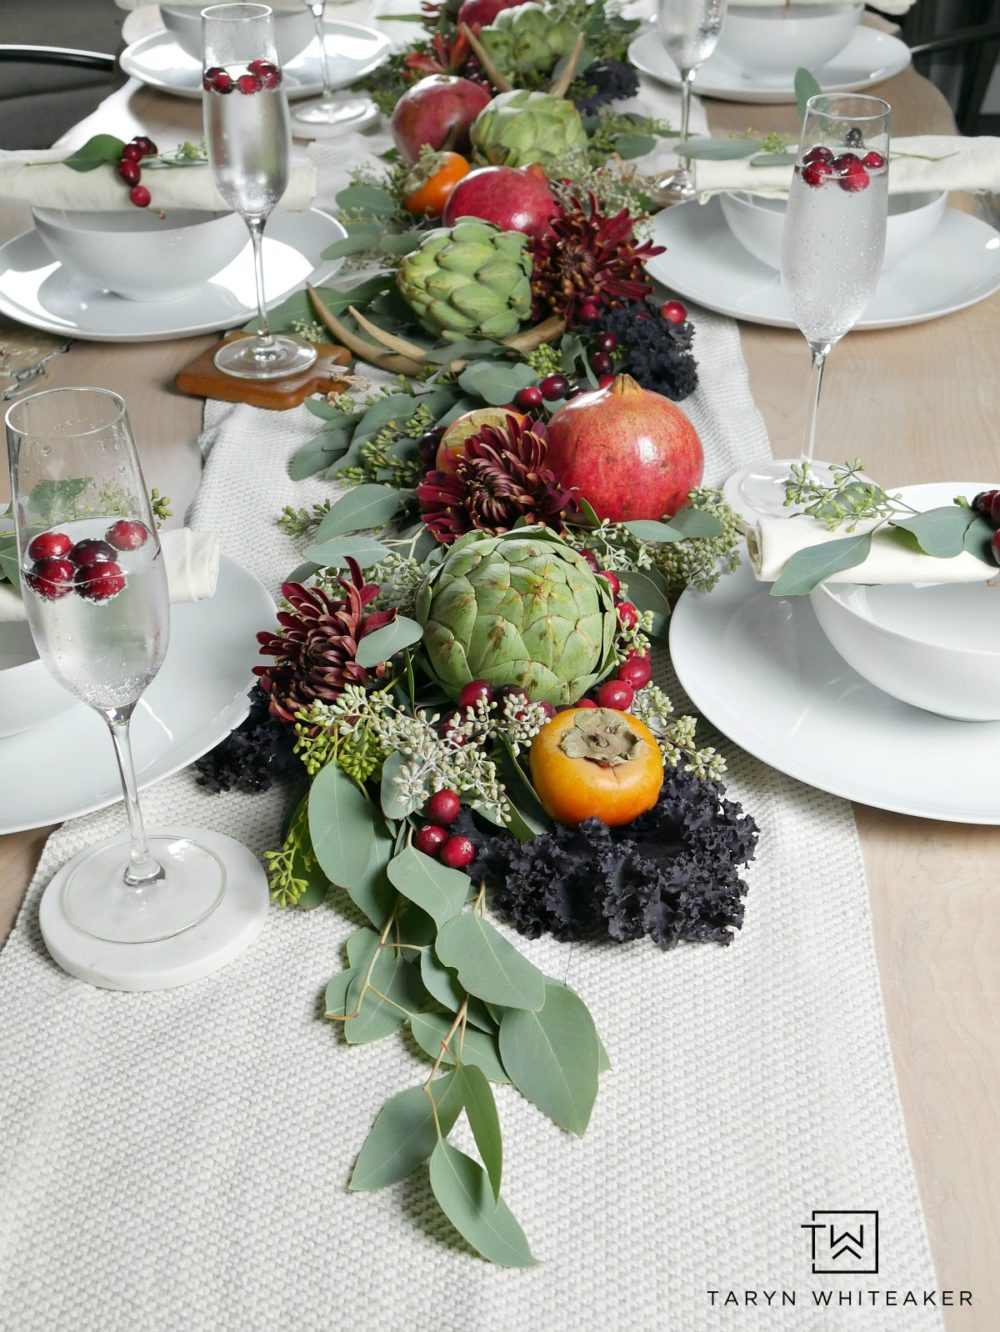 Thanksgiving Tablescape Featuring Cranberries - Love this rustic fall table setting using fresh fruits and vegetables